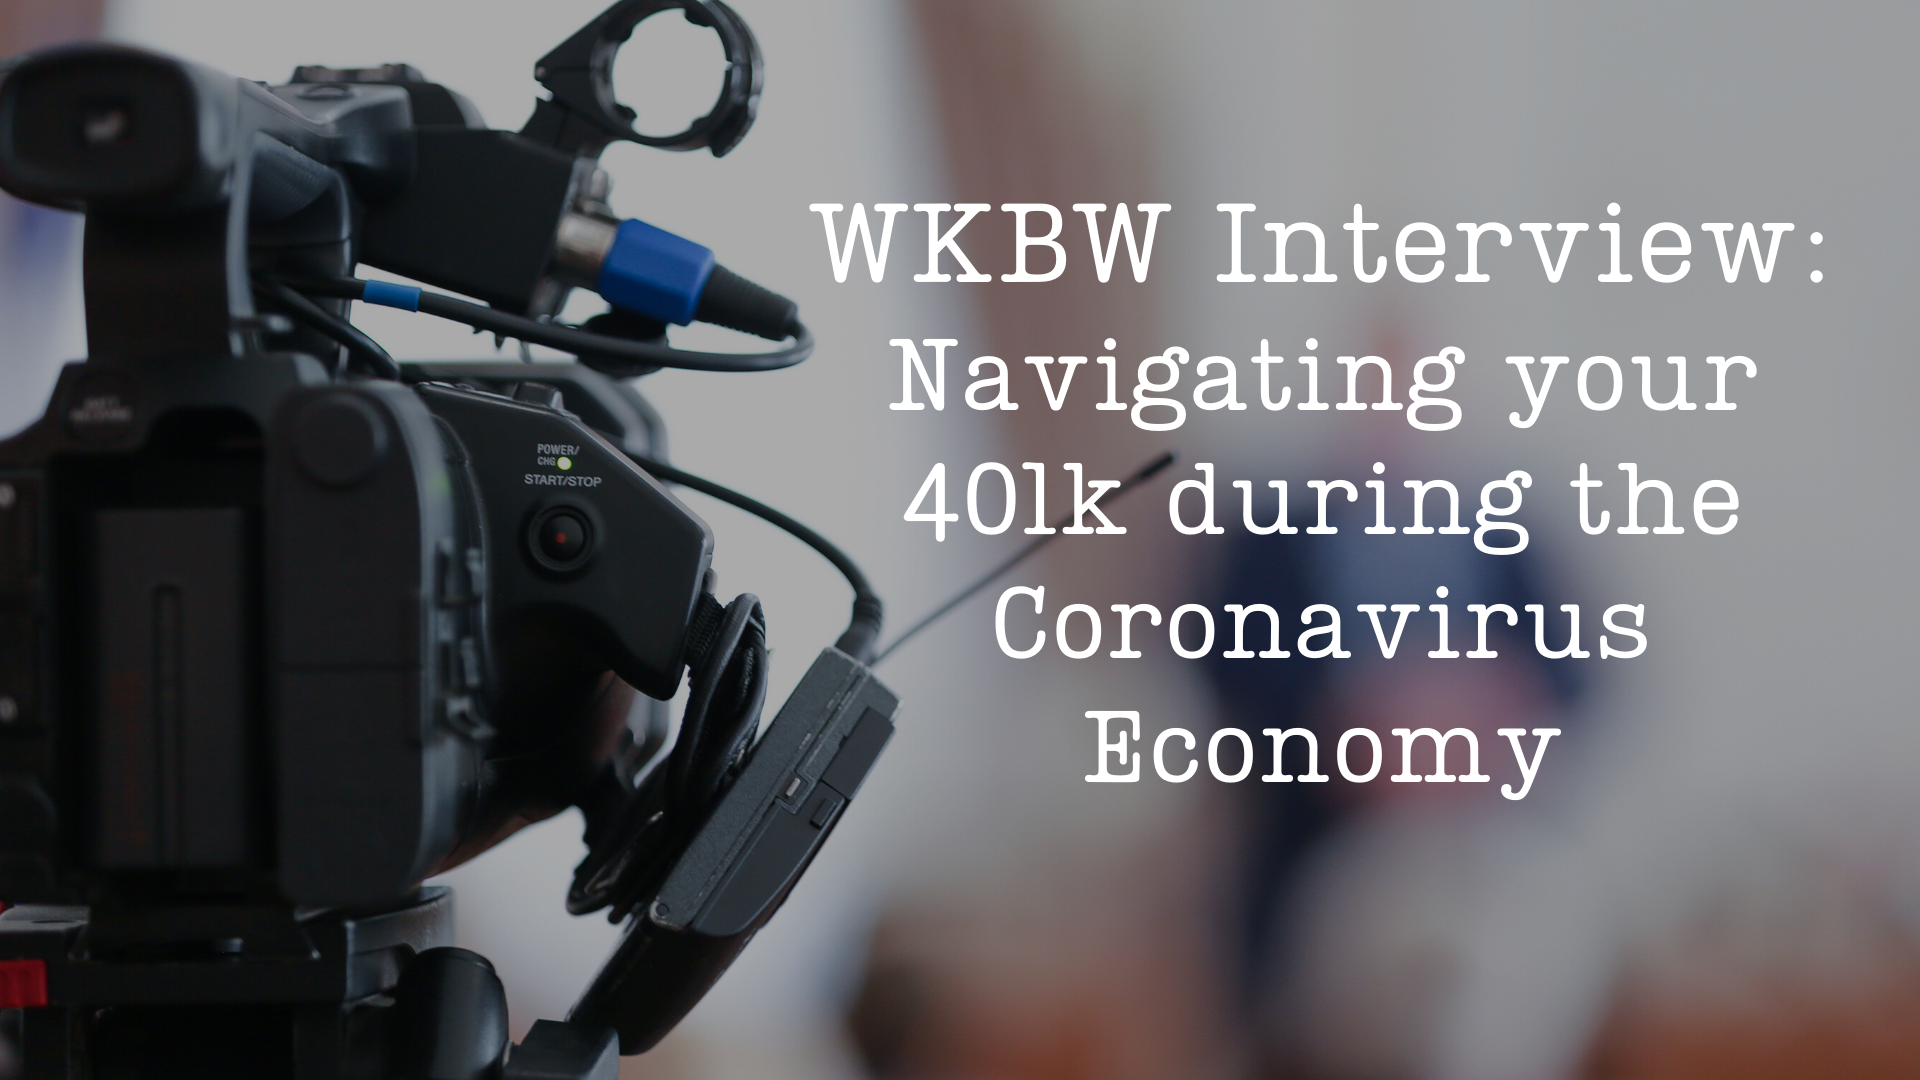 WKBW Interview: Navigating your 401k during the Coronavirus Economy